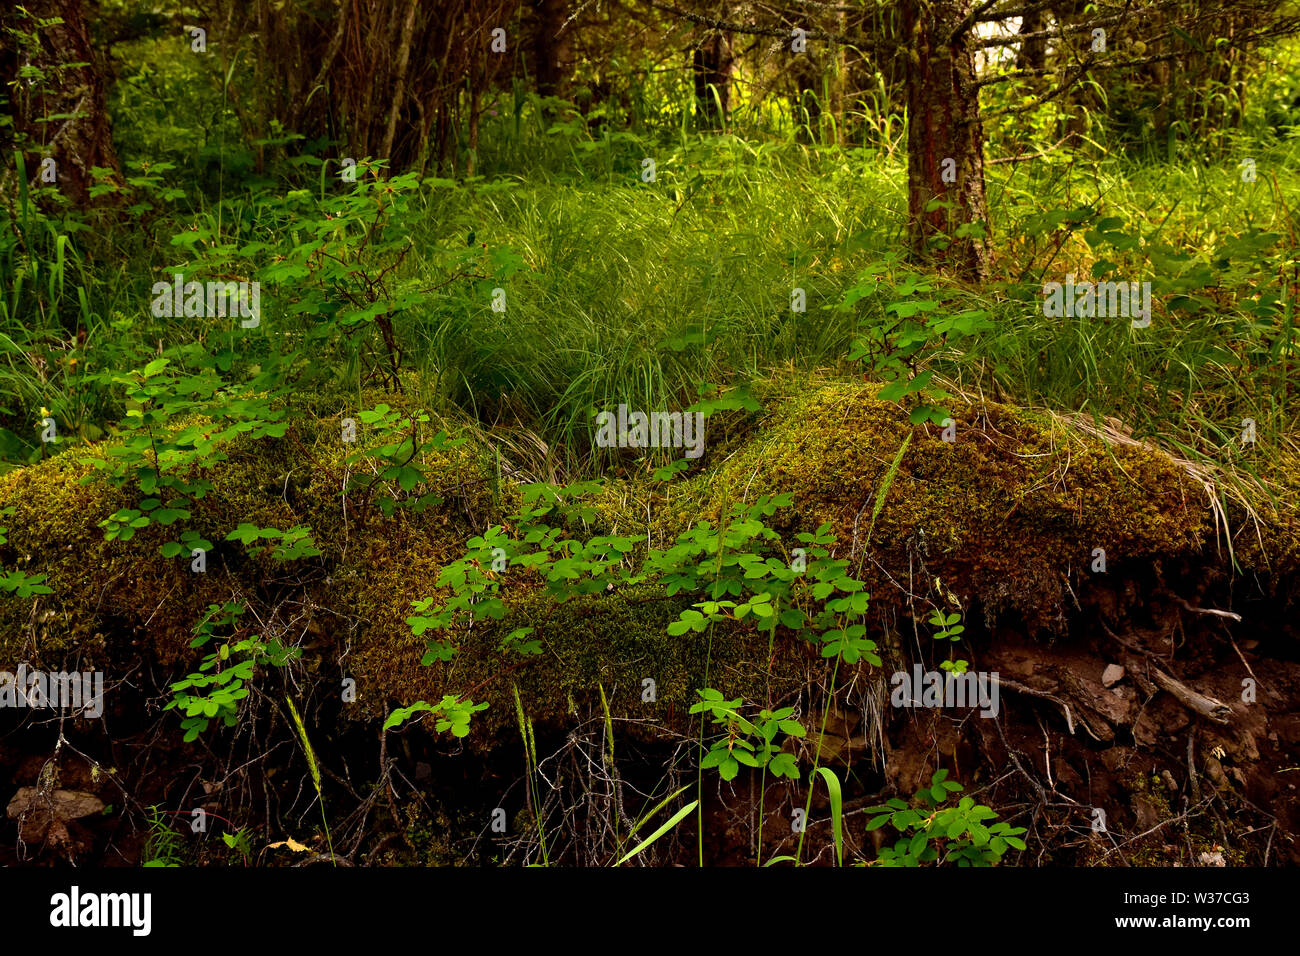 Lush undergrowth in the forest of southern British Columbia in the Cariboo region. Taken at 4:14 PM Stock Photo